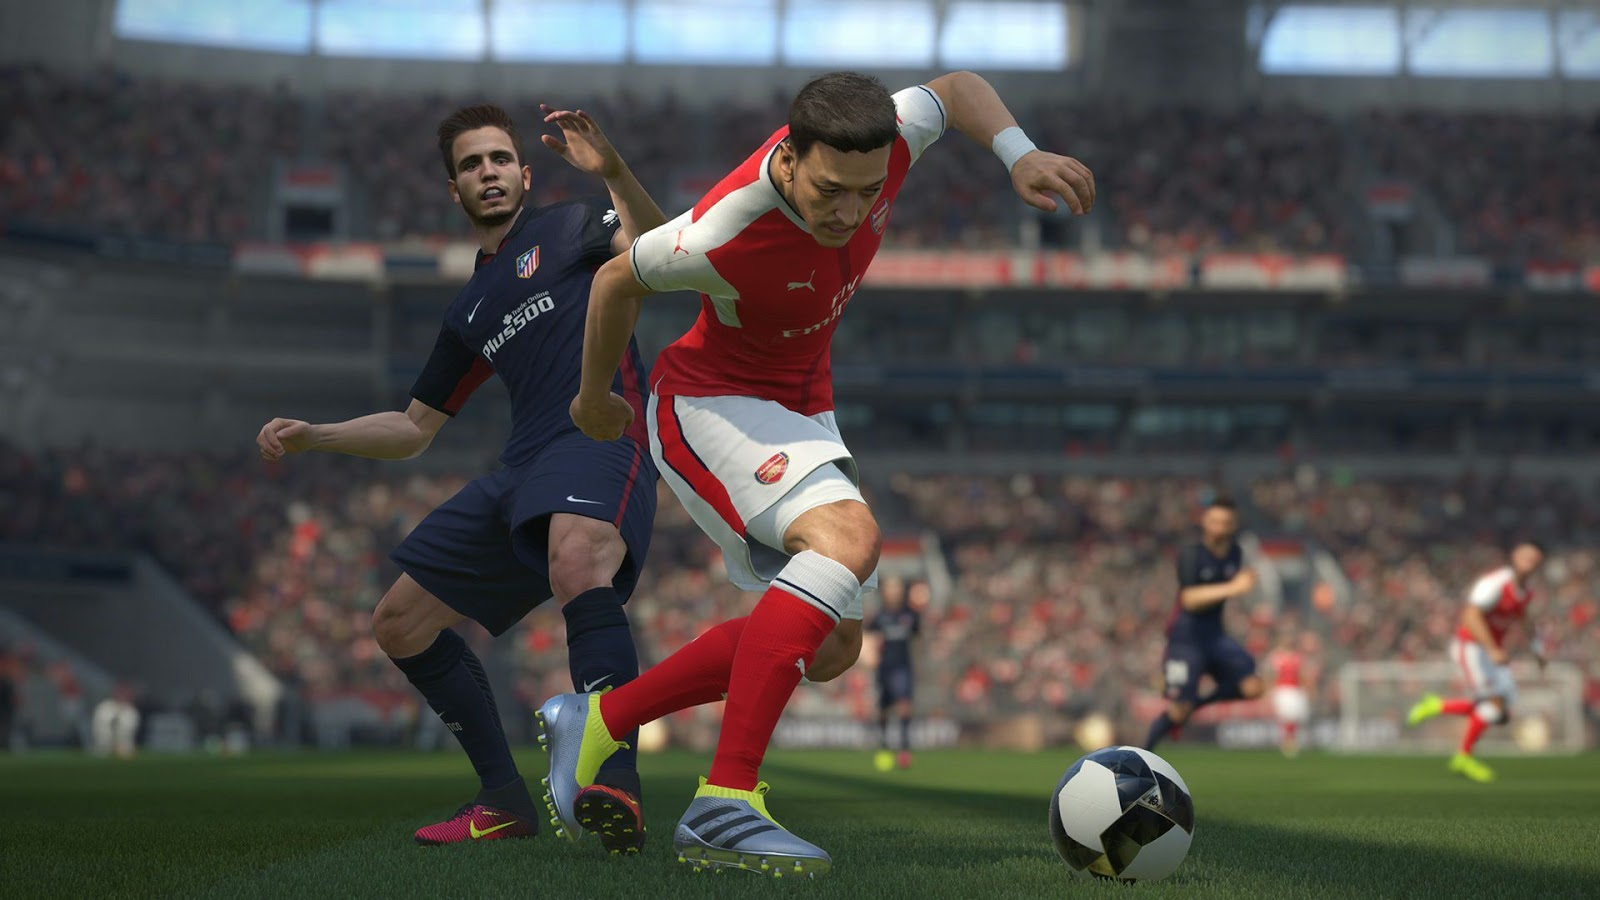 Pes 2018 PC - Pes 2018 for PC